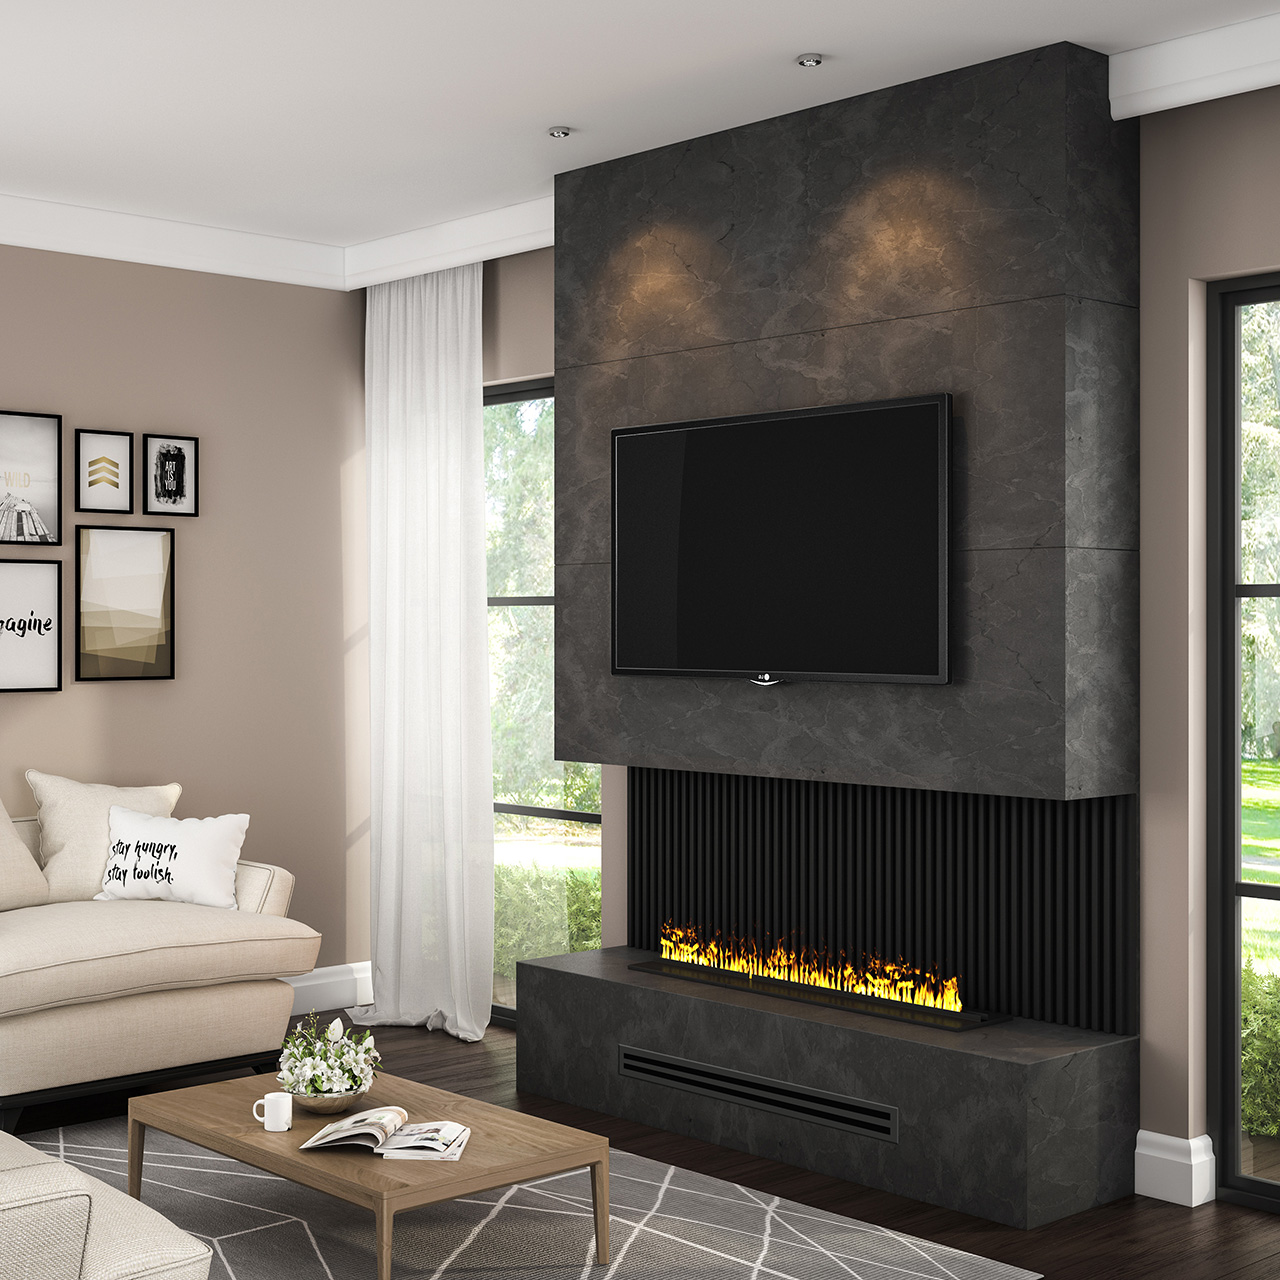 How To Make An Electric Fireplace Look Real Stylish Fireplaces